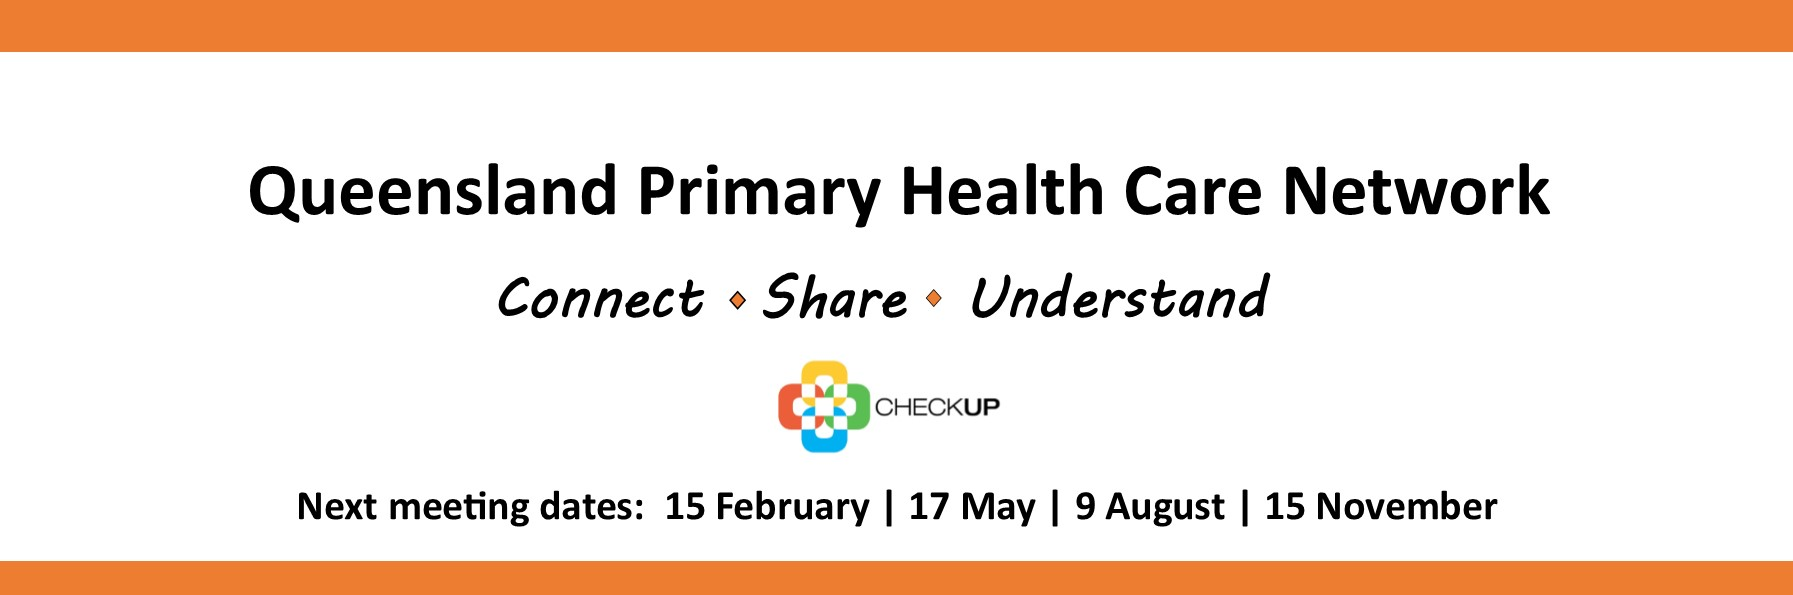 QPHCN Queensland Primary Health Care Network Meeting (9 August 2017)